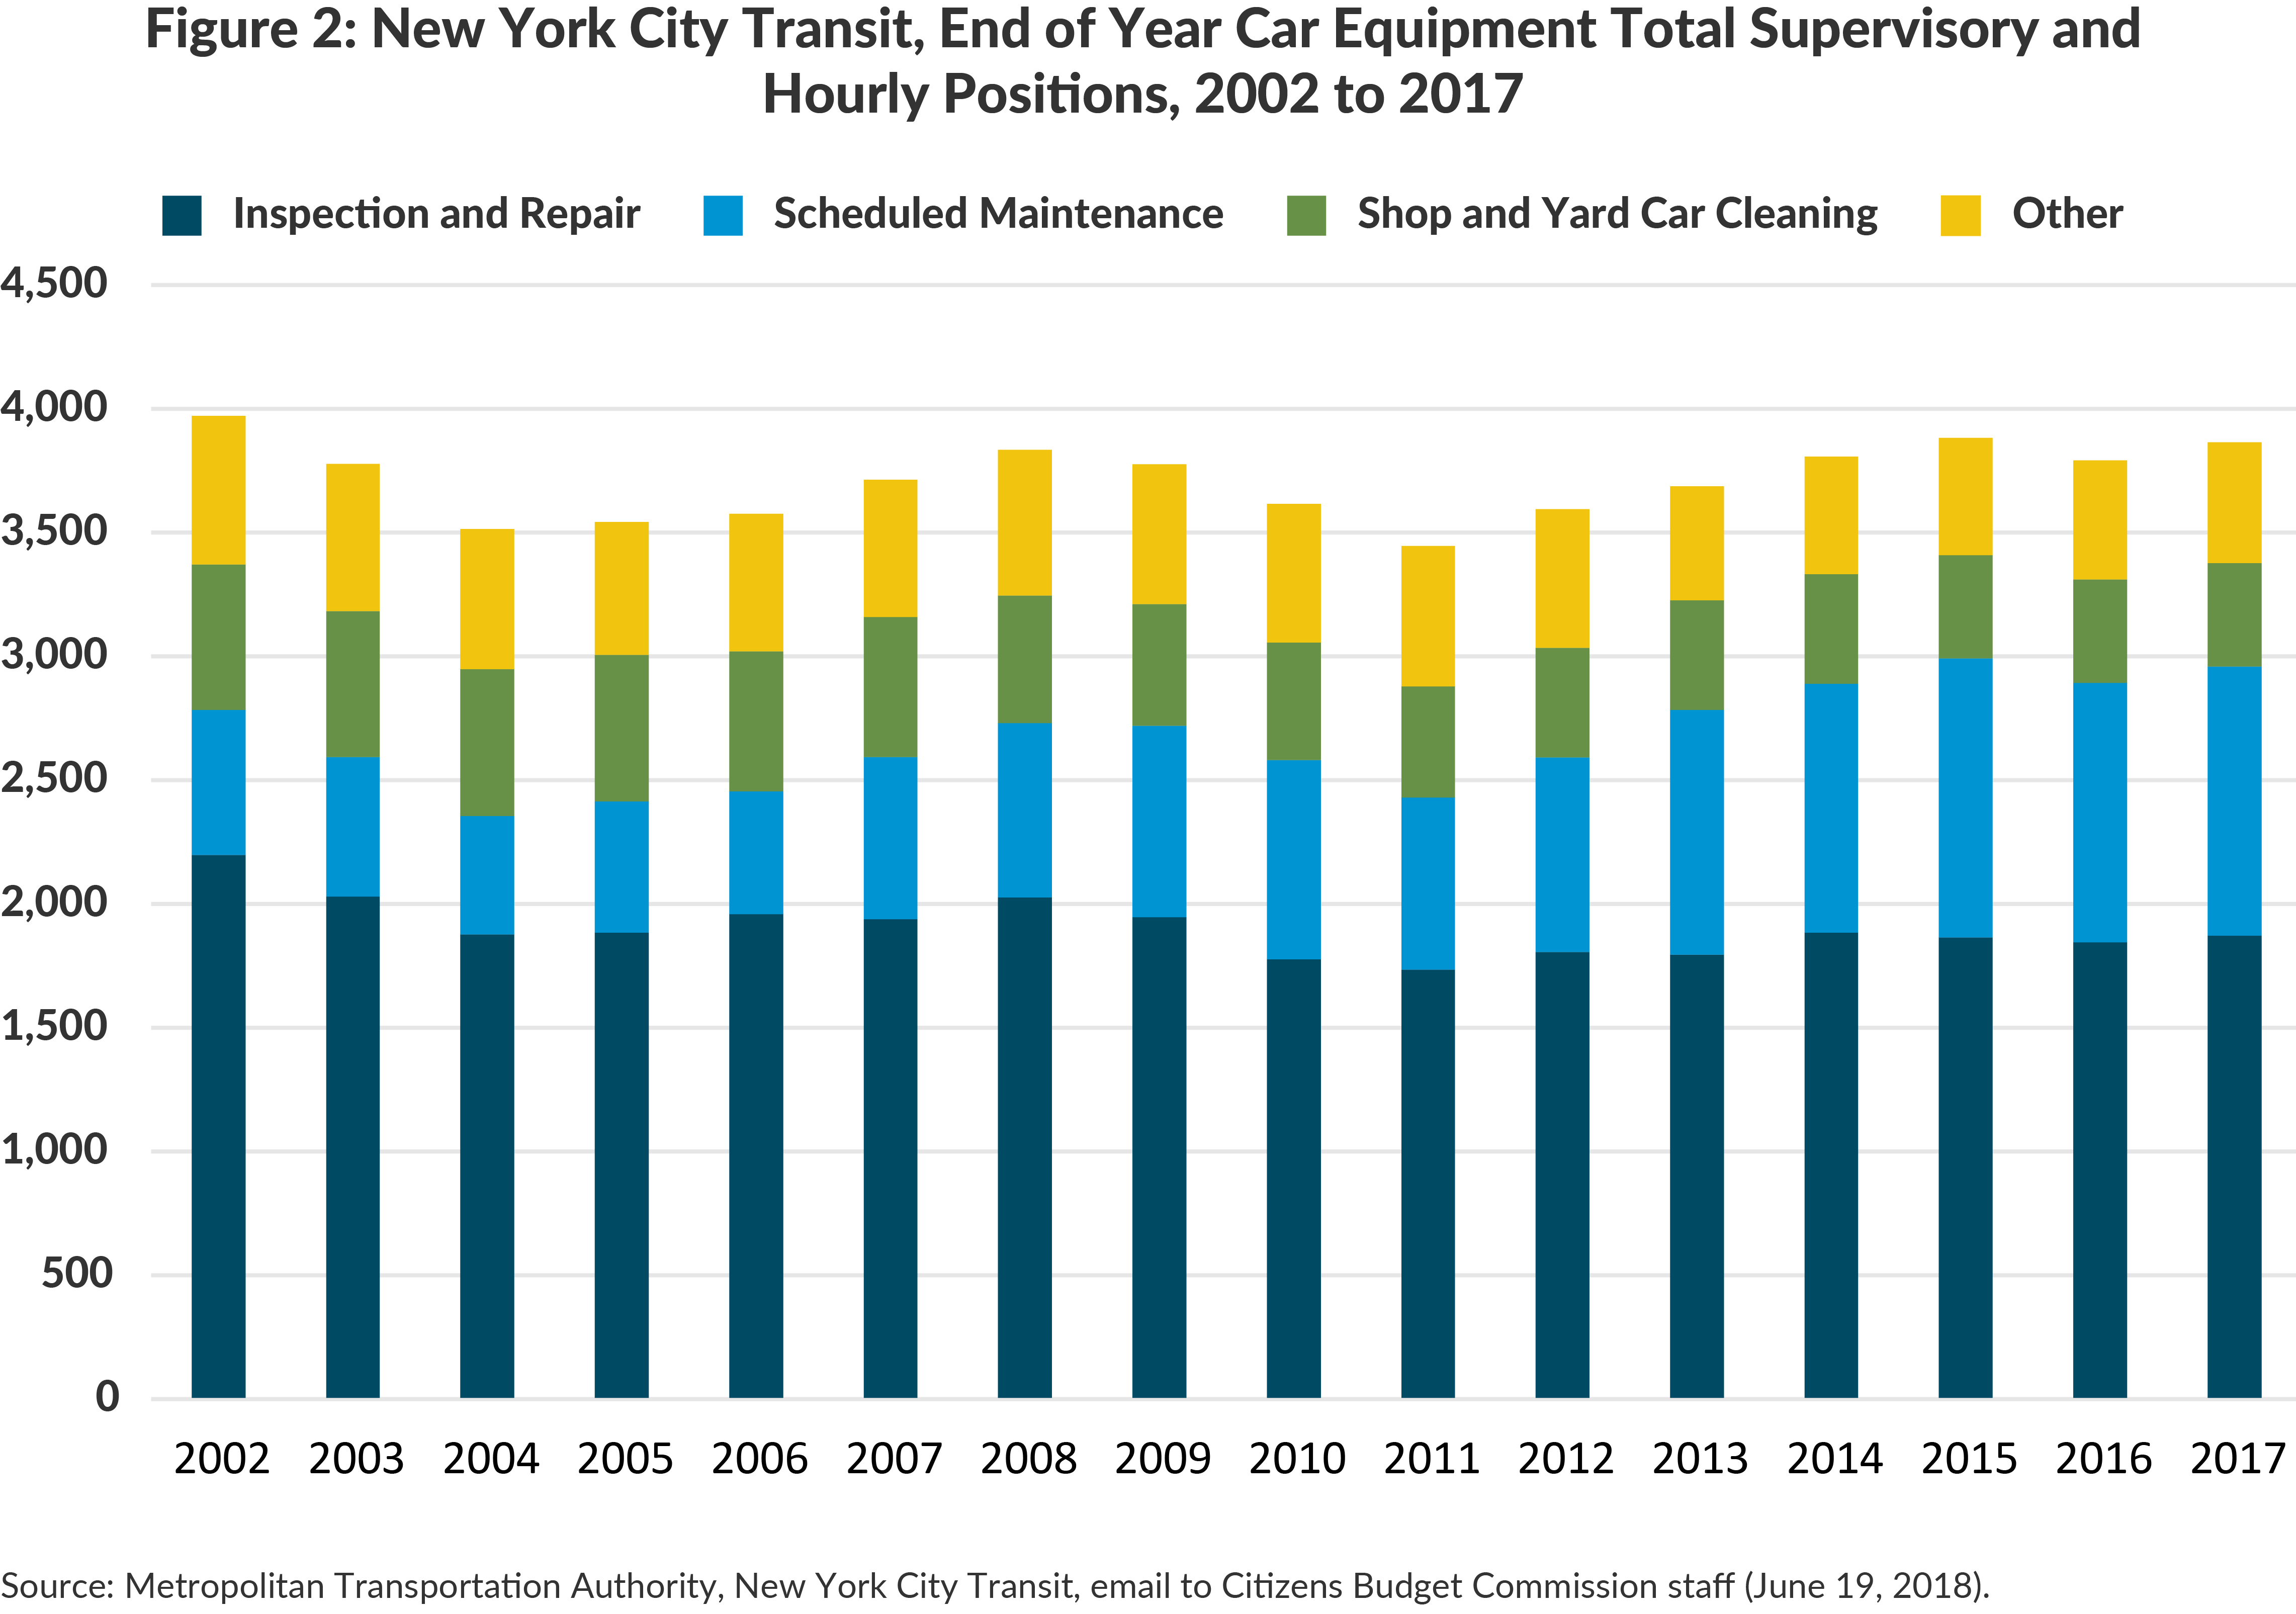 Figure 2: New York City Transit, End of Year Car Equipment Total Supervisory and Hourly Positions, 2002 to 2017